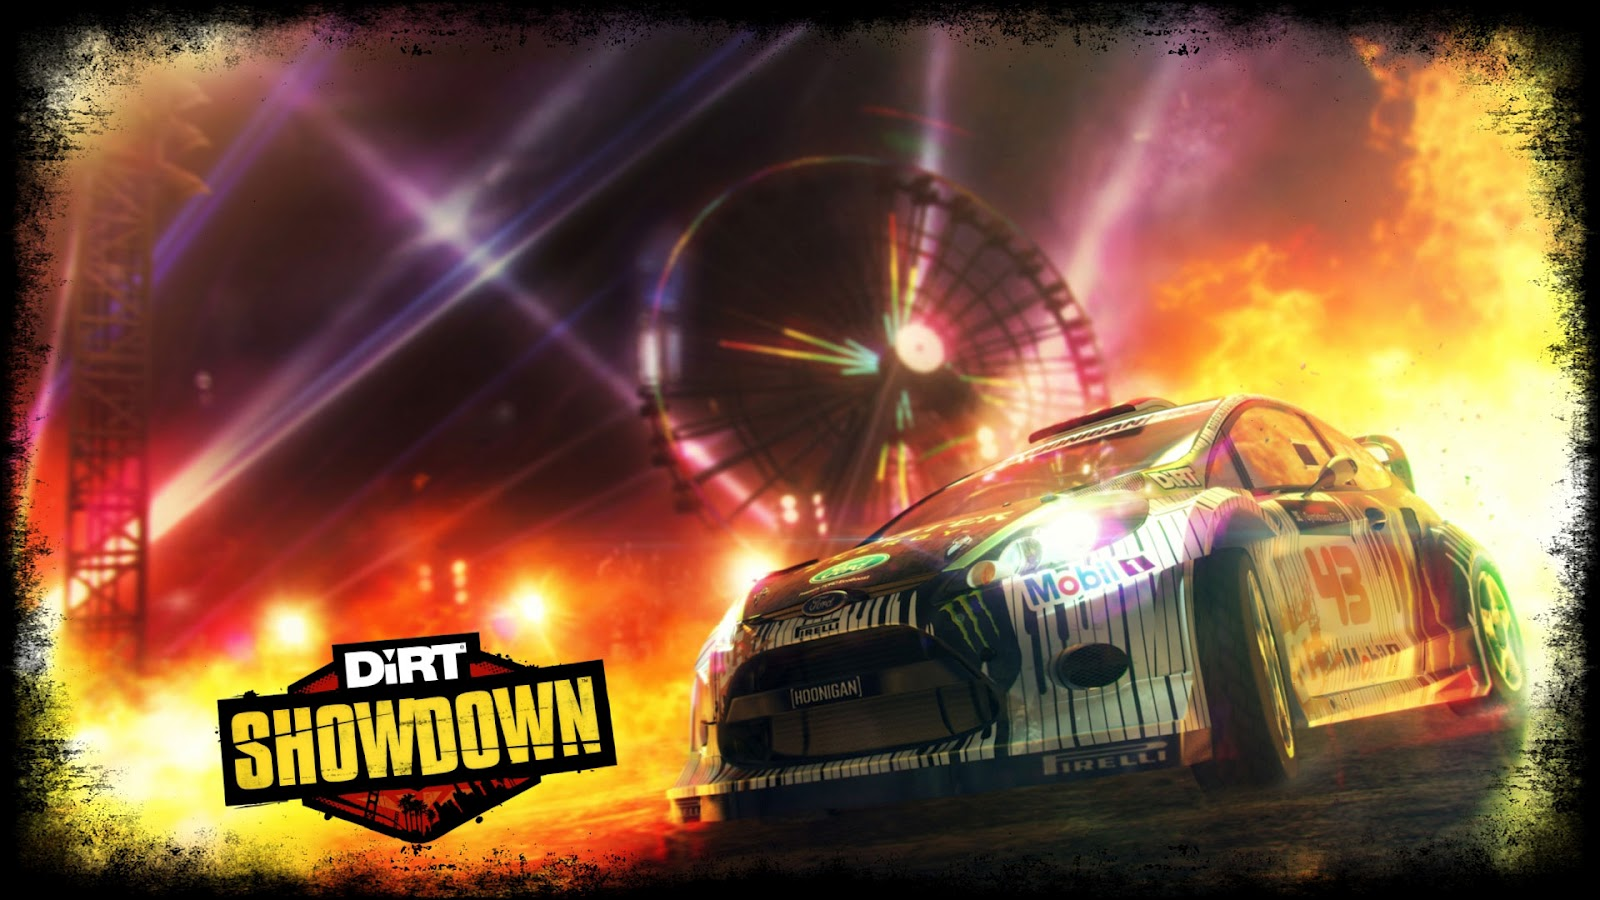 http://4.bp.blogspot.com/-XgYefuTQH98/UBXTadY98gI/AAAAAAAAFpg/eyDwxCJRaUU/s1600/dirt_showdown_wallpaper.jpg